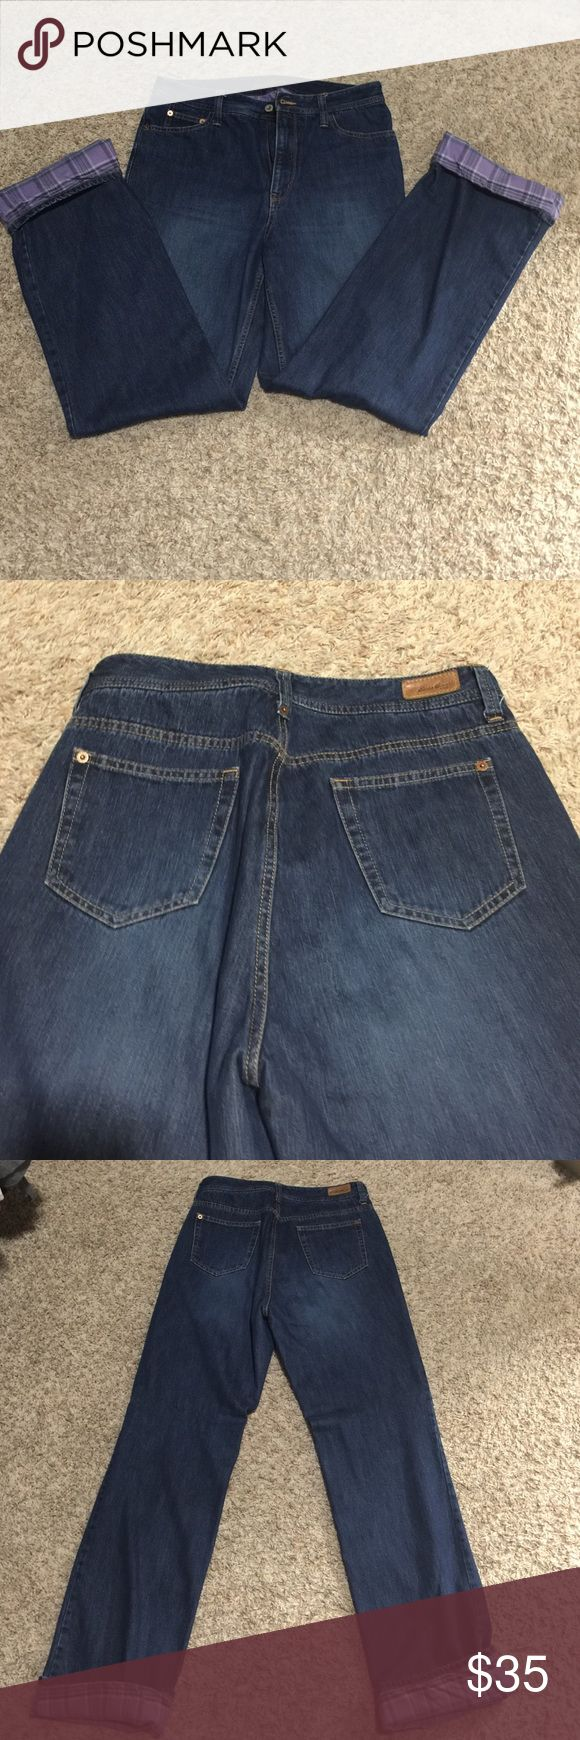 Eddie Bauer flannel lined jeans These warm flannel lines jeans are in perfect condition worn maybe twice. Eddie Bauer Pants Wide Leg